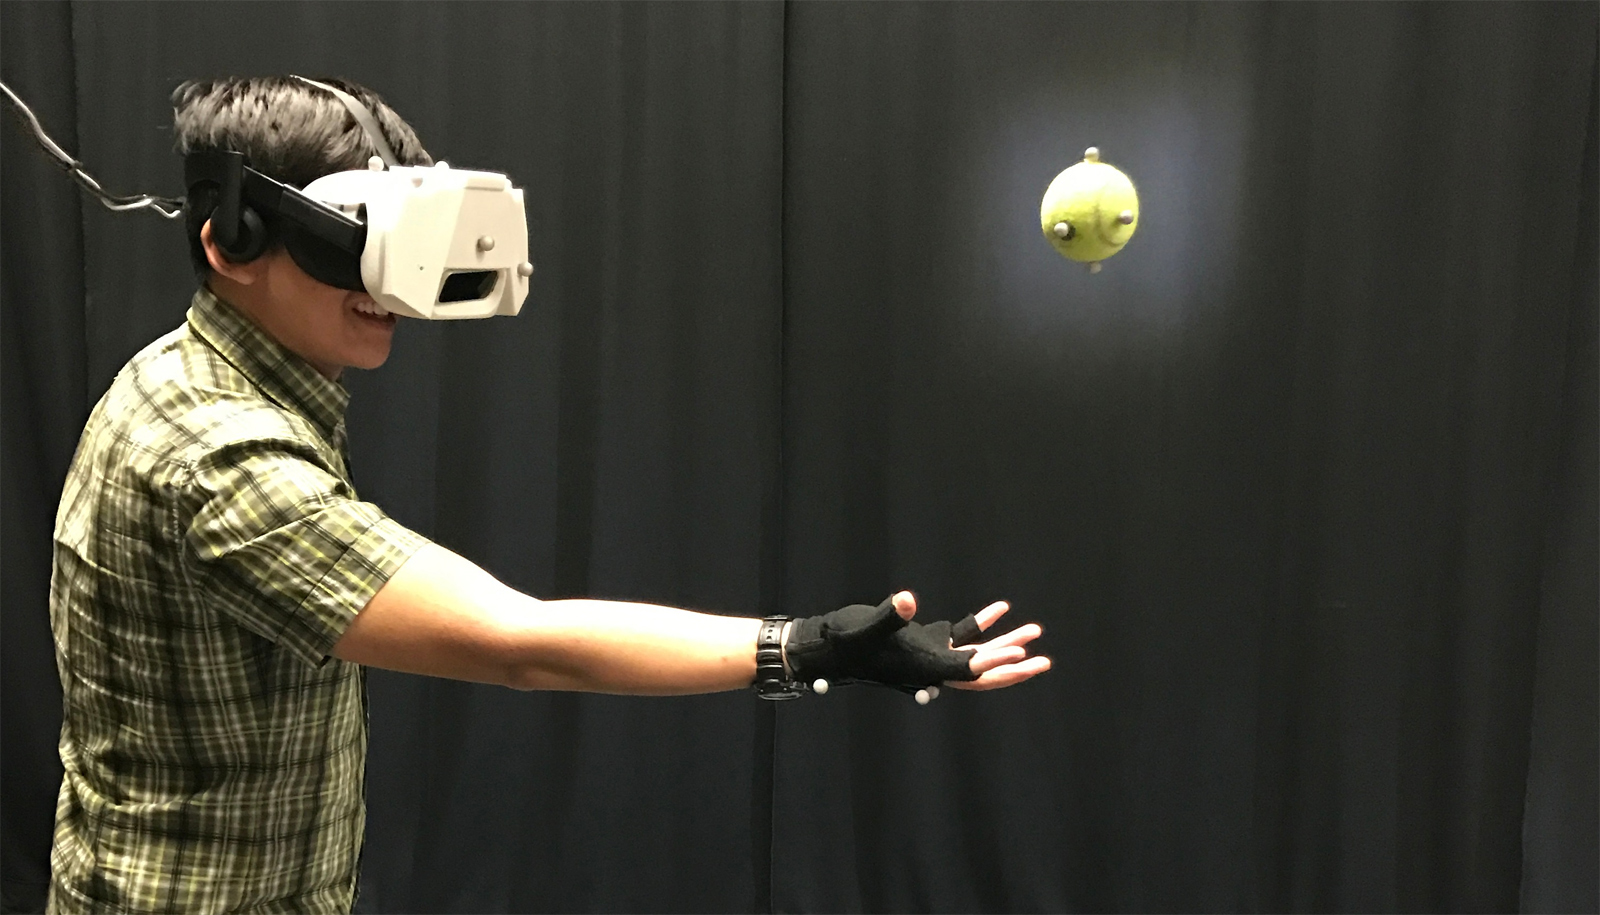 photo image Disney shows how you catch a real ball in VR